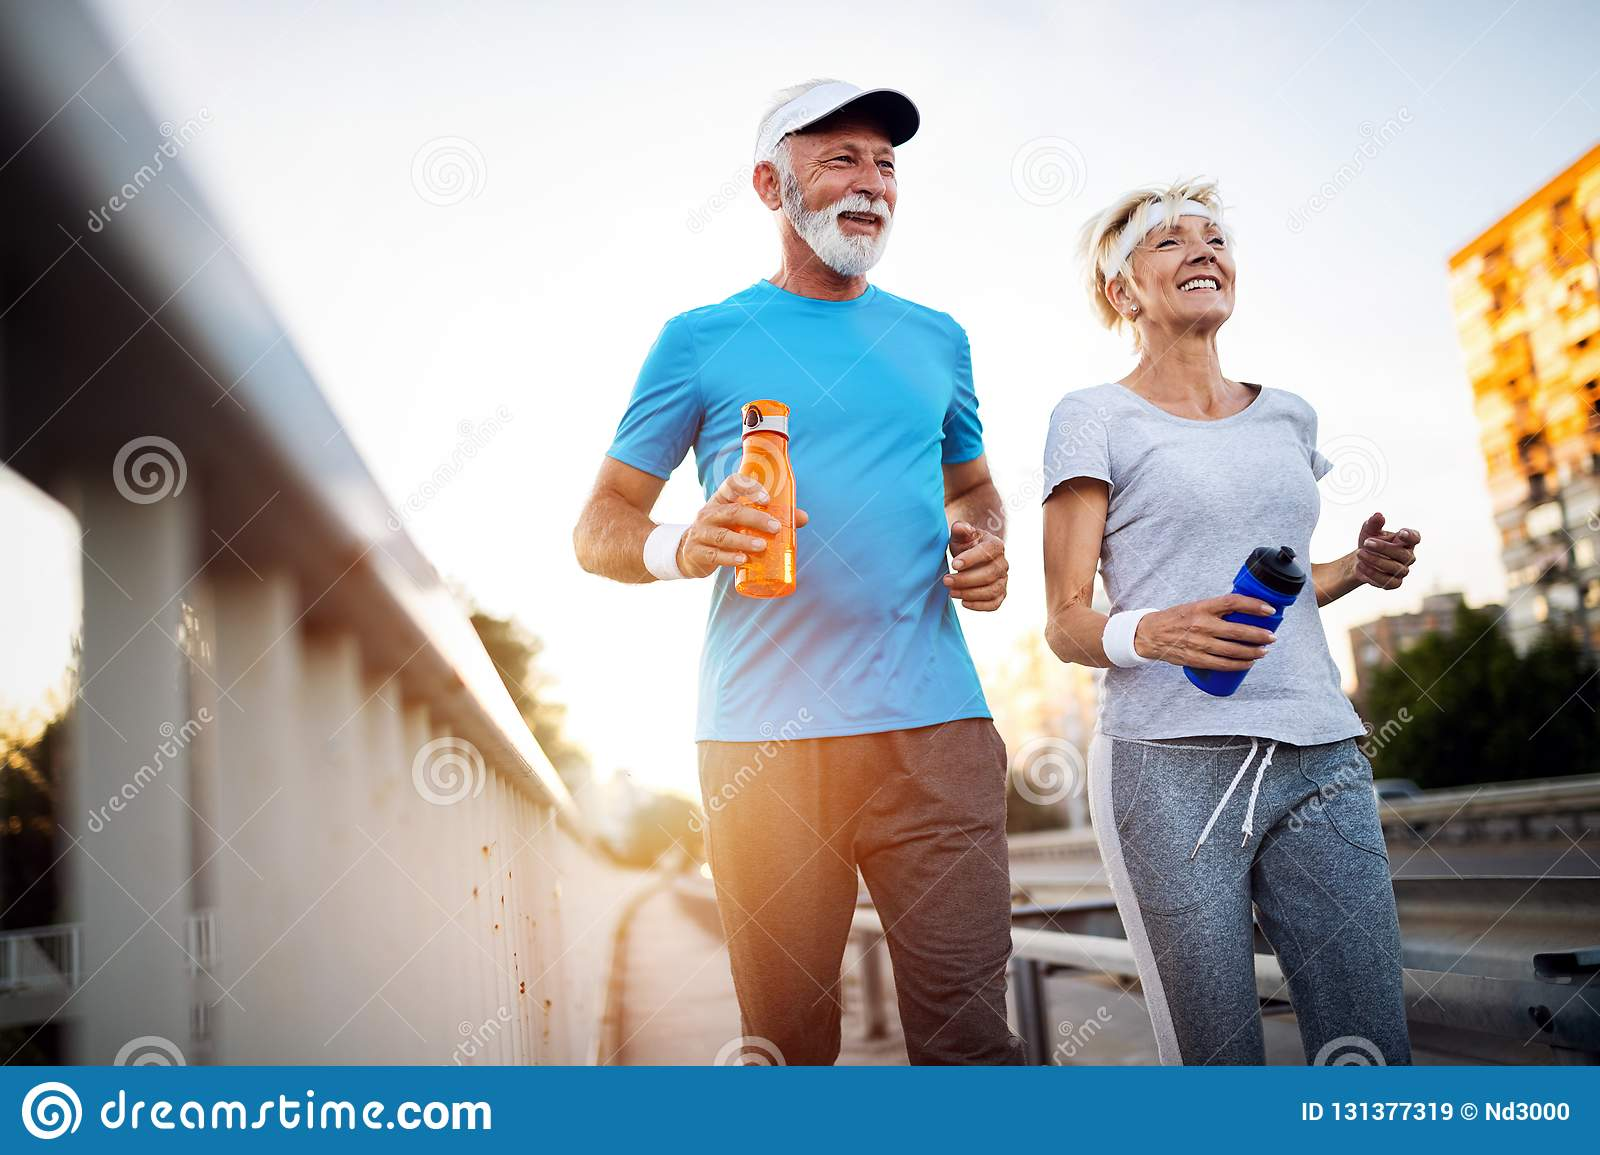 Mature couple jogging and running outdoors in city